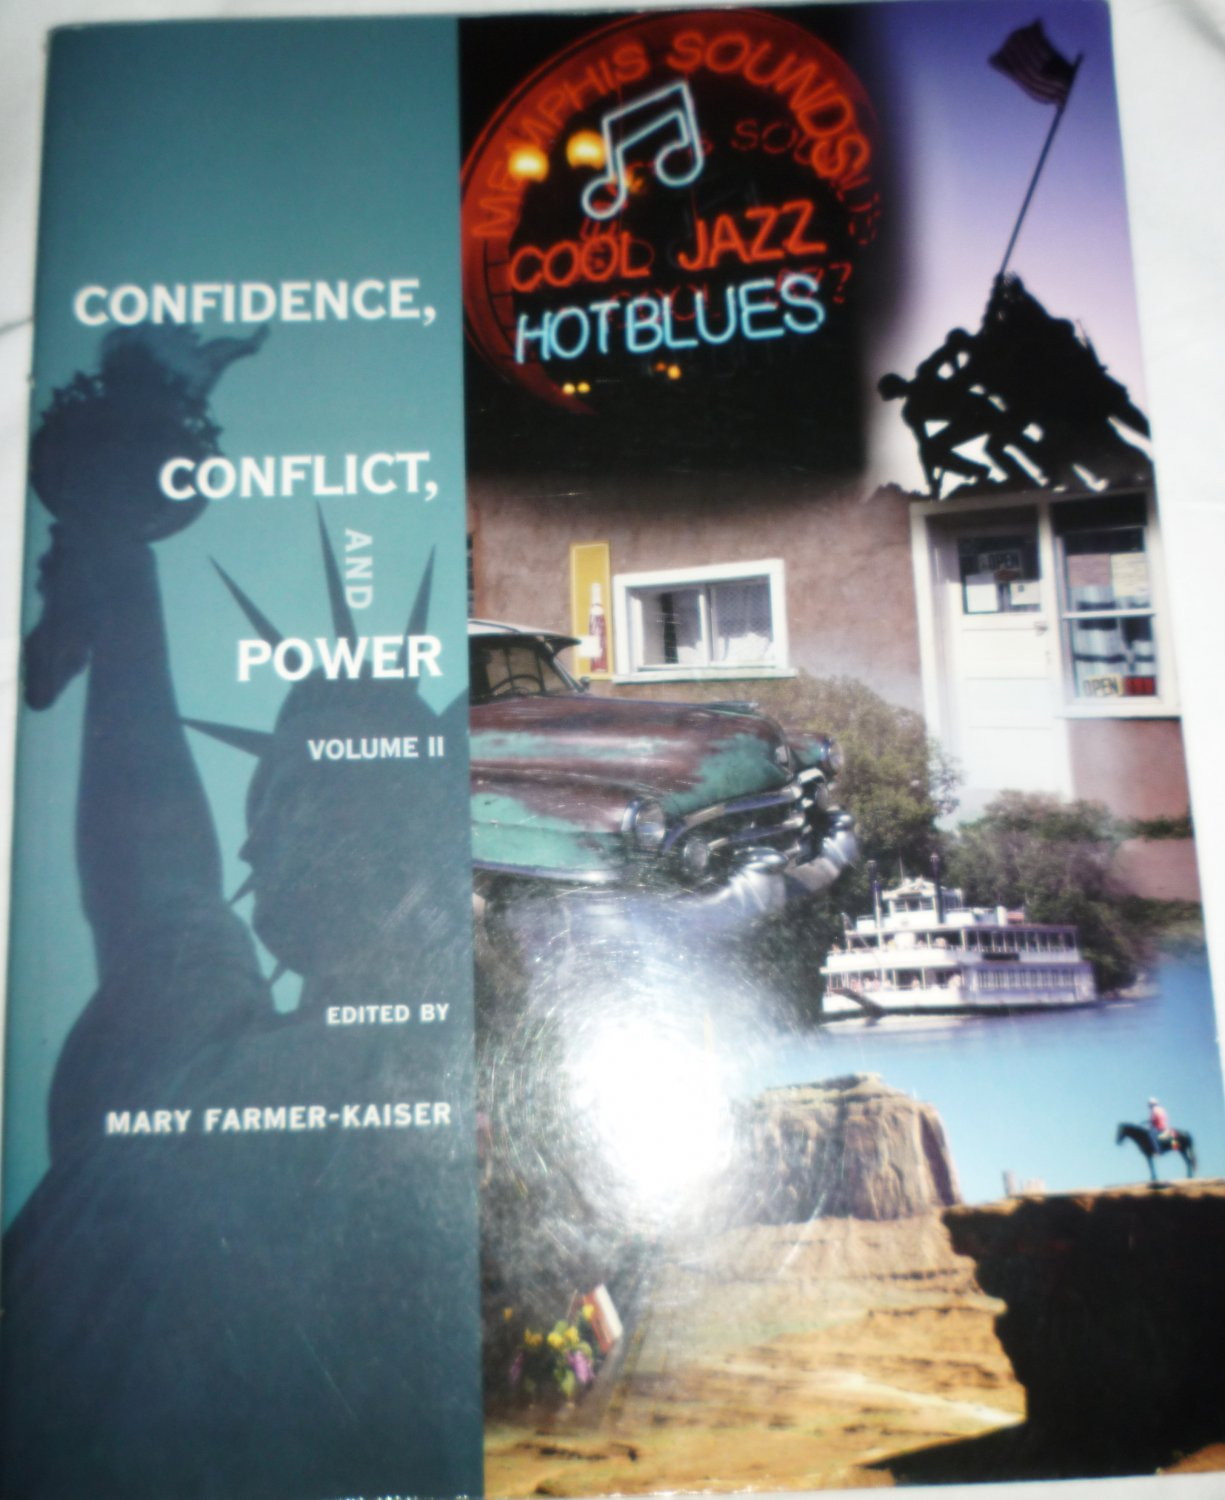 CONFIDENCE, CONFLICT, AND POWER VOLUME II BY MARY FARMER-LAISER UNIVERSITY LA